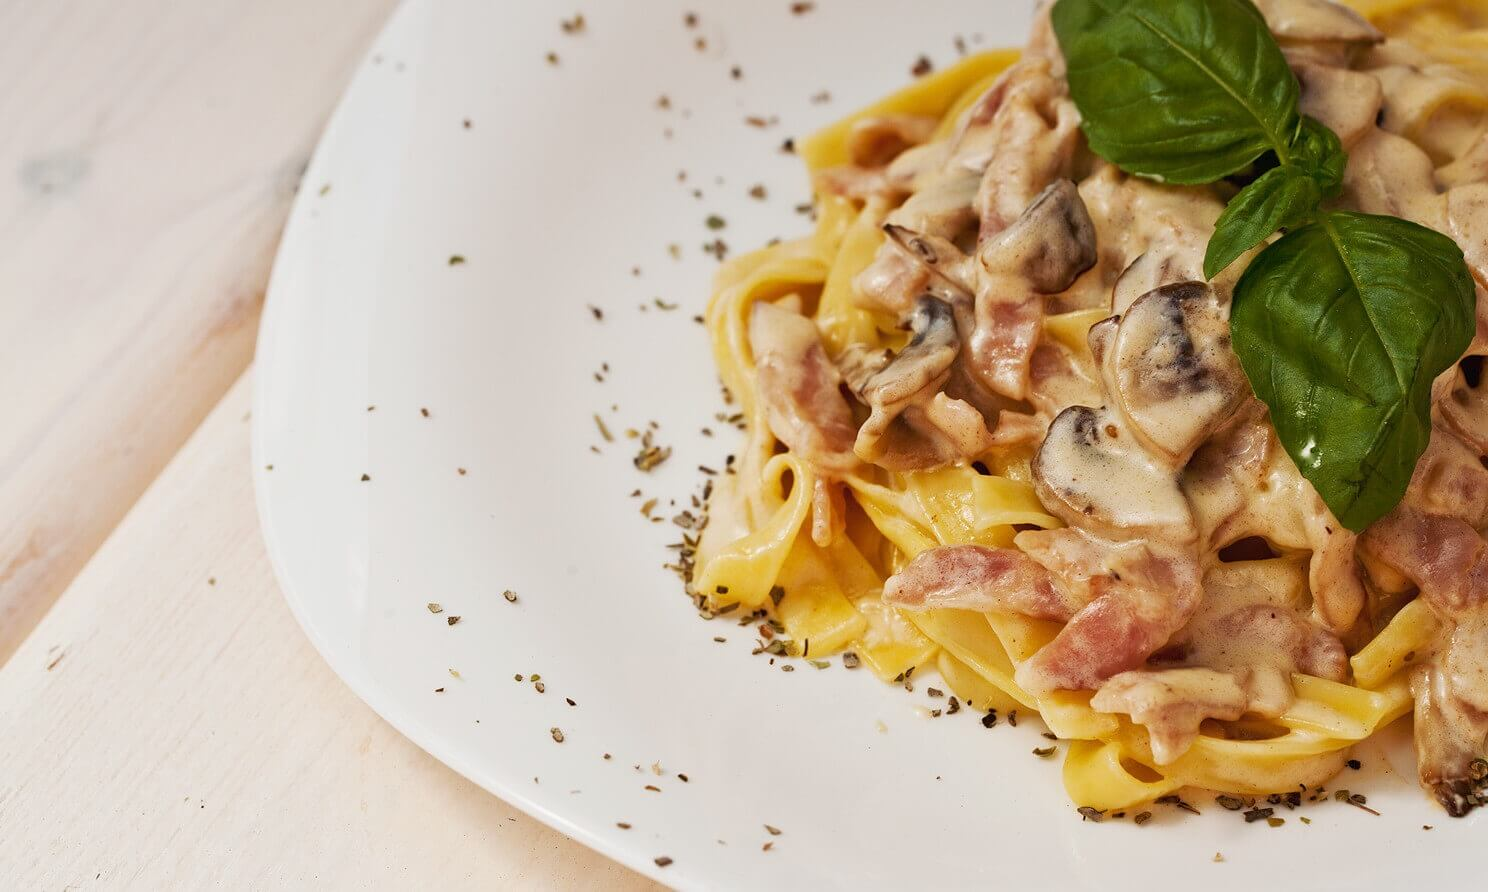 How to cook pasta with mushrooms in creamy sauce 3